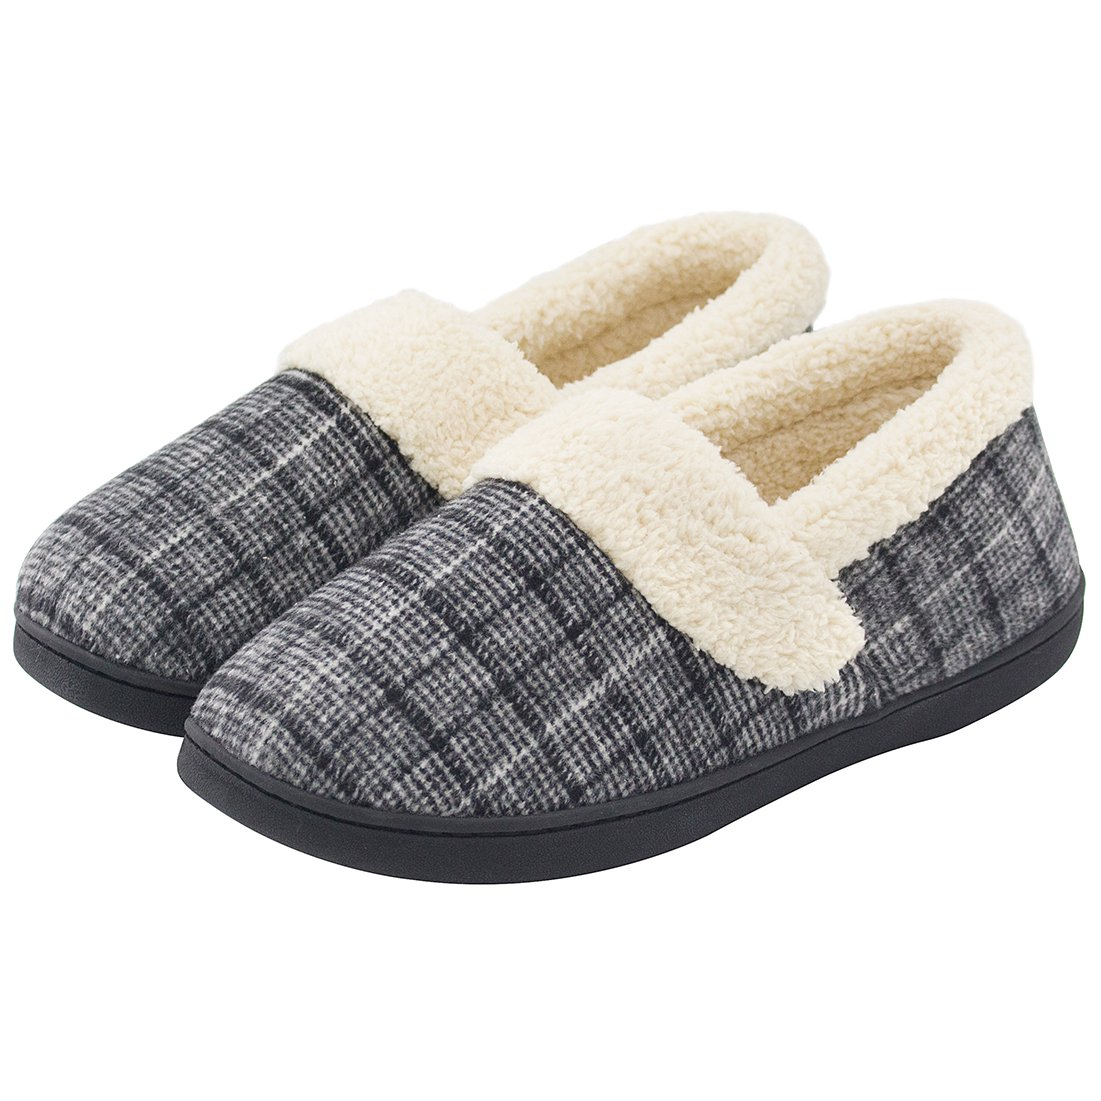 HomeIdeas Women's Woolen Fabric Plaid House Slippers Anti Slip Breathable Indoor Outdoor Shoes